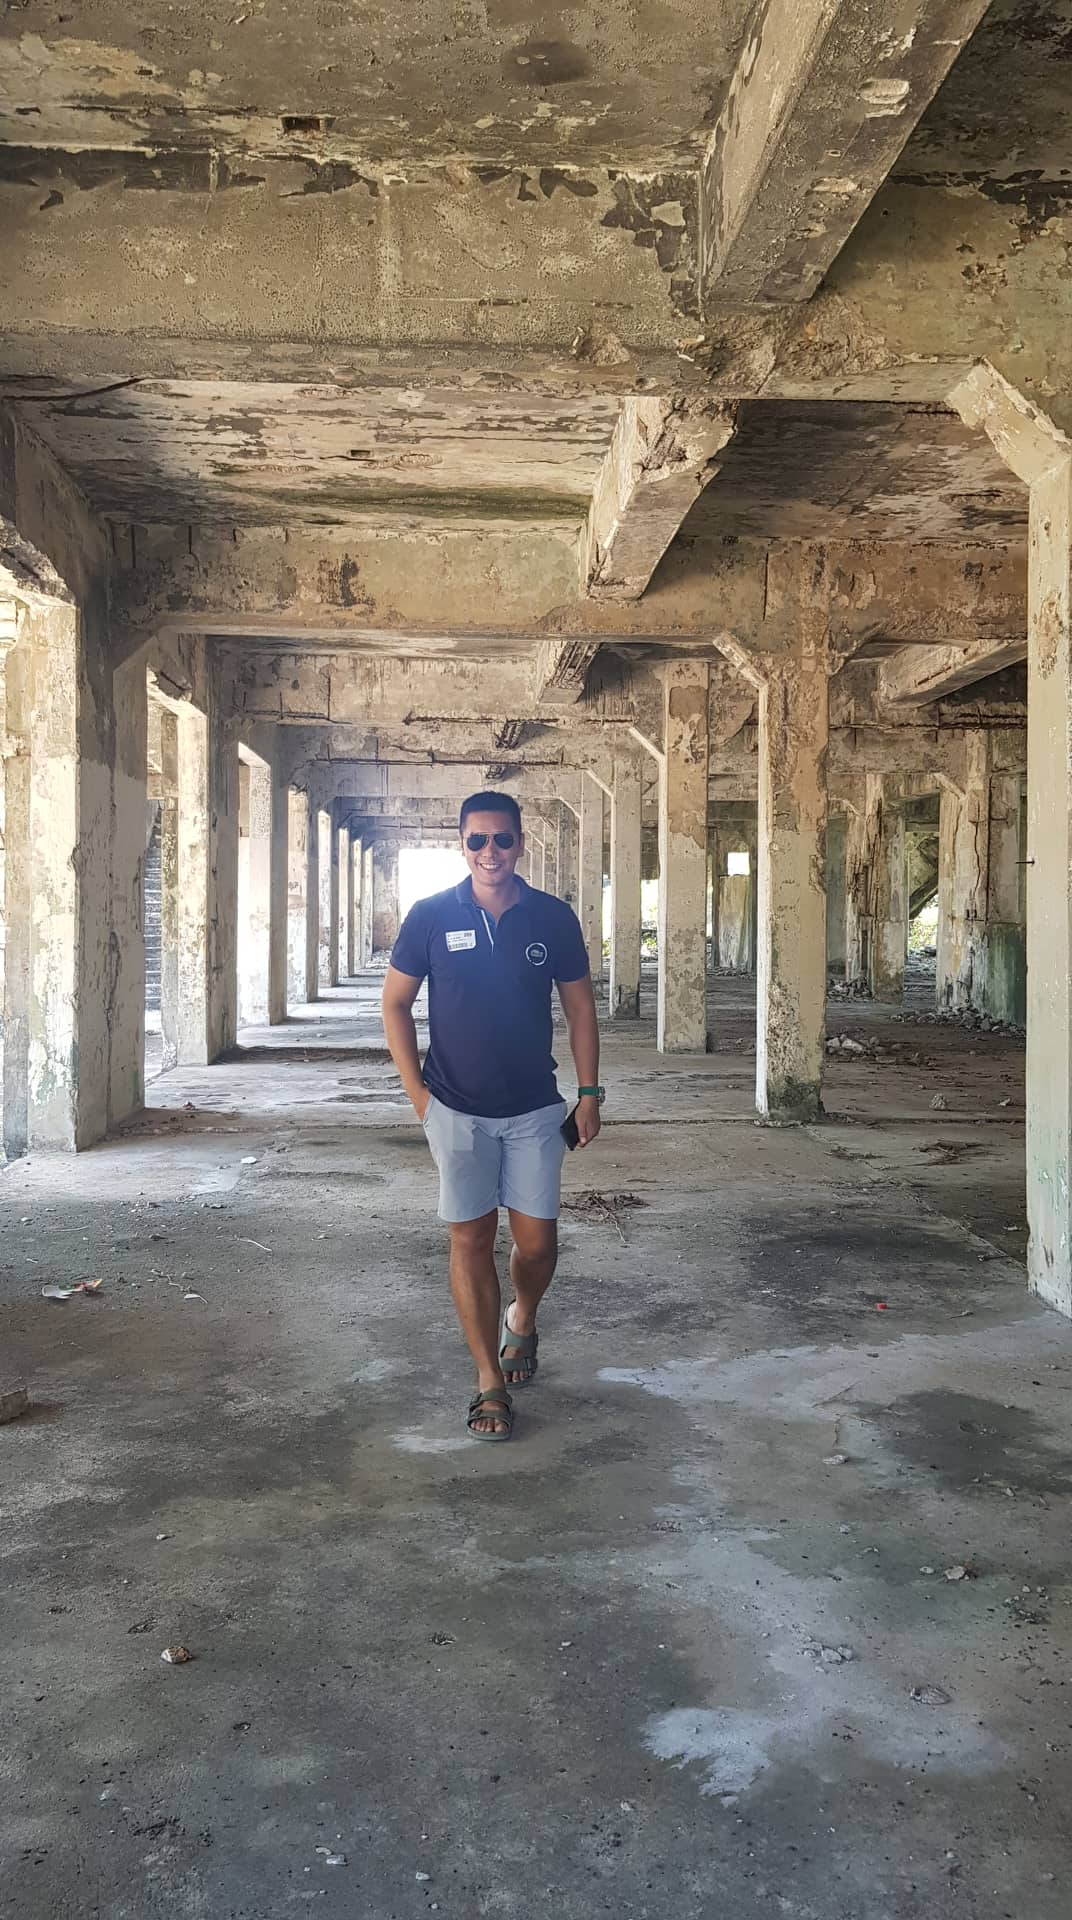 topside-barracks-corregidor (1)